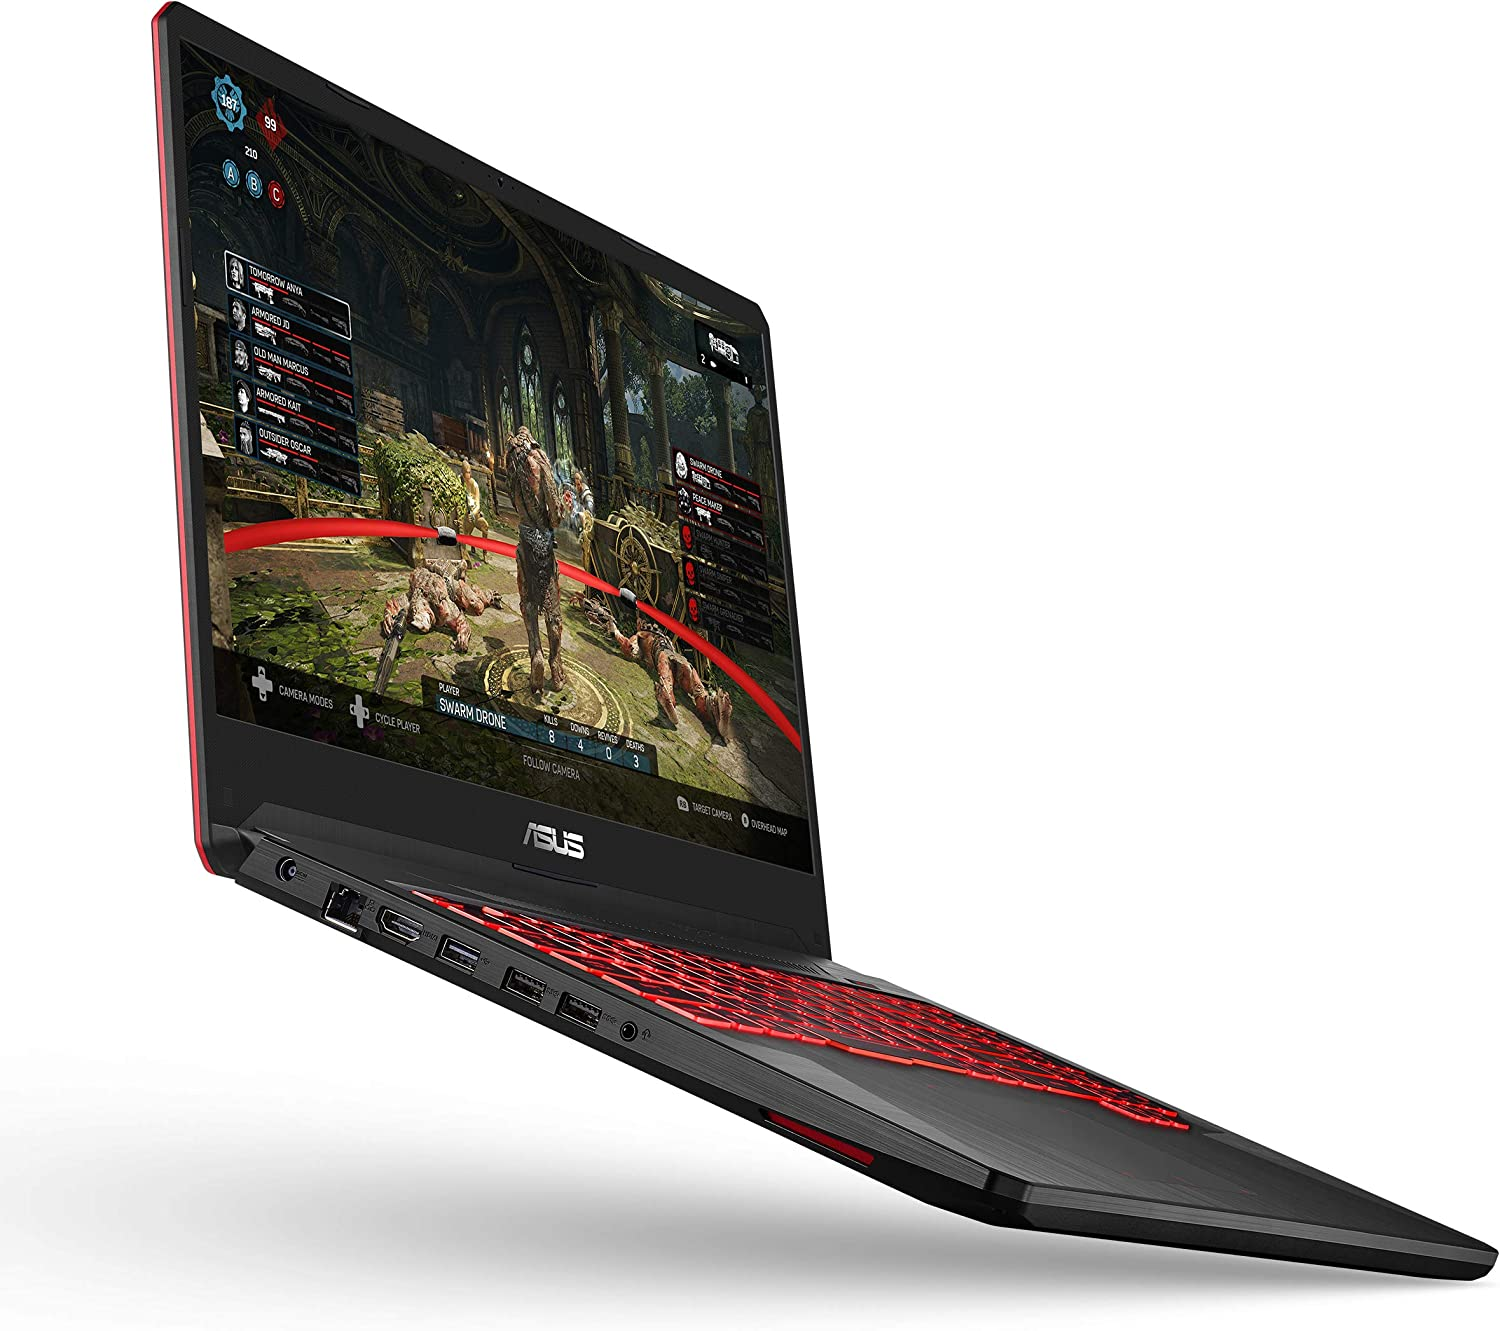 "ASUS TUF Gaming Laptop, 17.3"" Full HD IPS Type, AMD Ryzen 5 3550H CPU, AMD Radeon RX560X, 8GB DDR4, 512GB PCIe SSD, Gigabit Wi-Fi 5, Windows 10 Home - FX705DY-EH53"